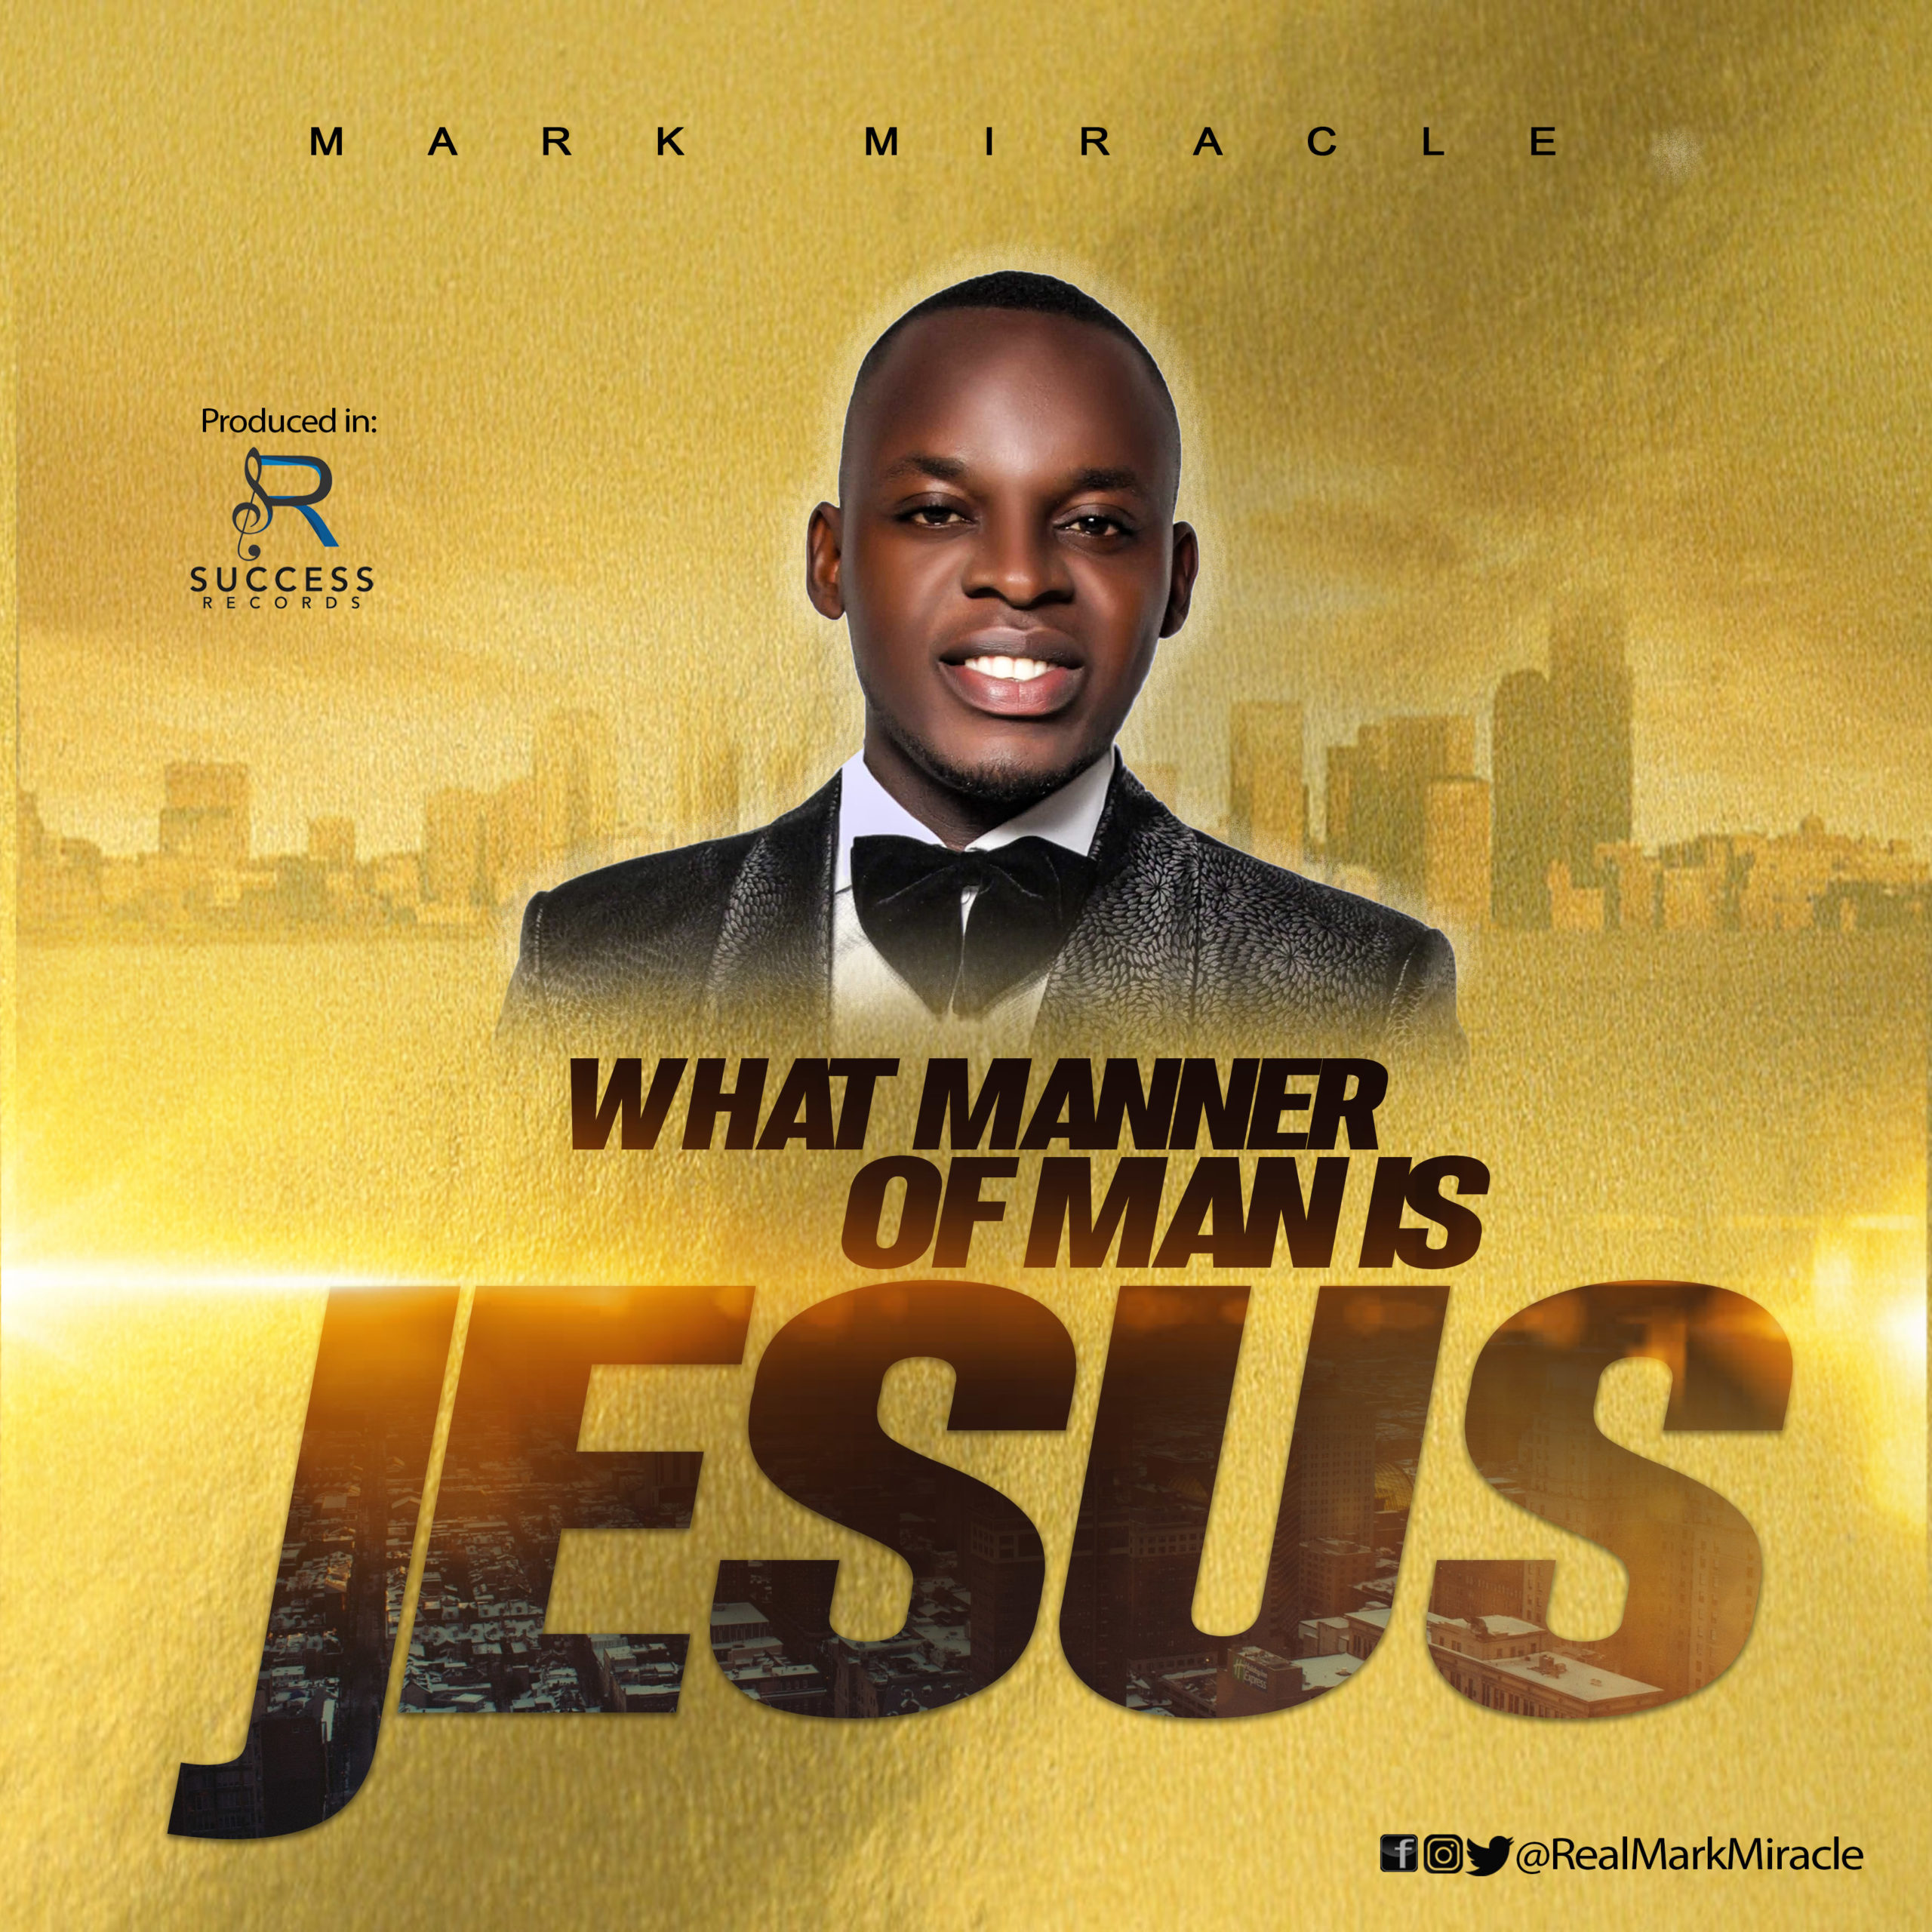 download Mark Miracle - What Manner Of Man Is Jesus